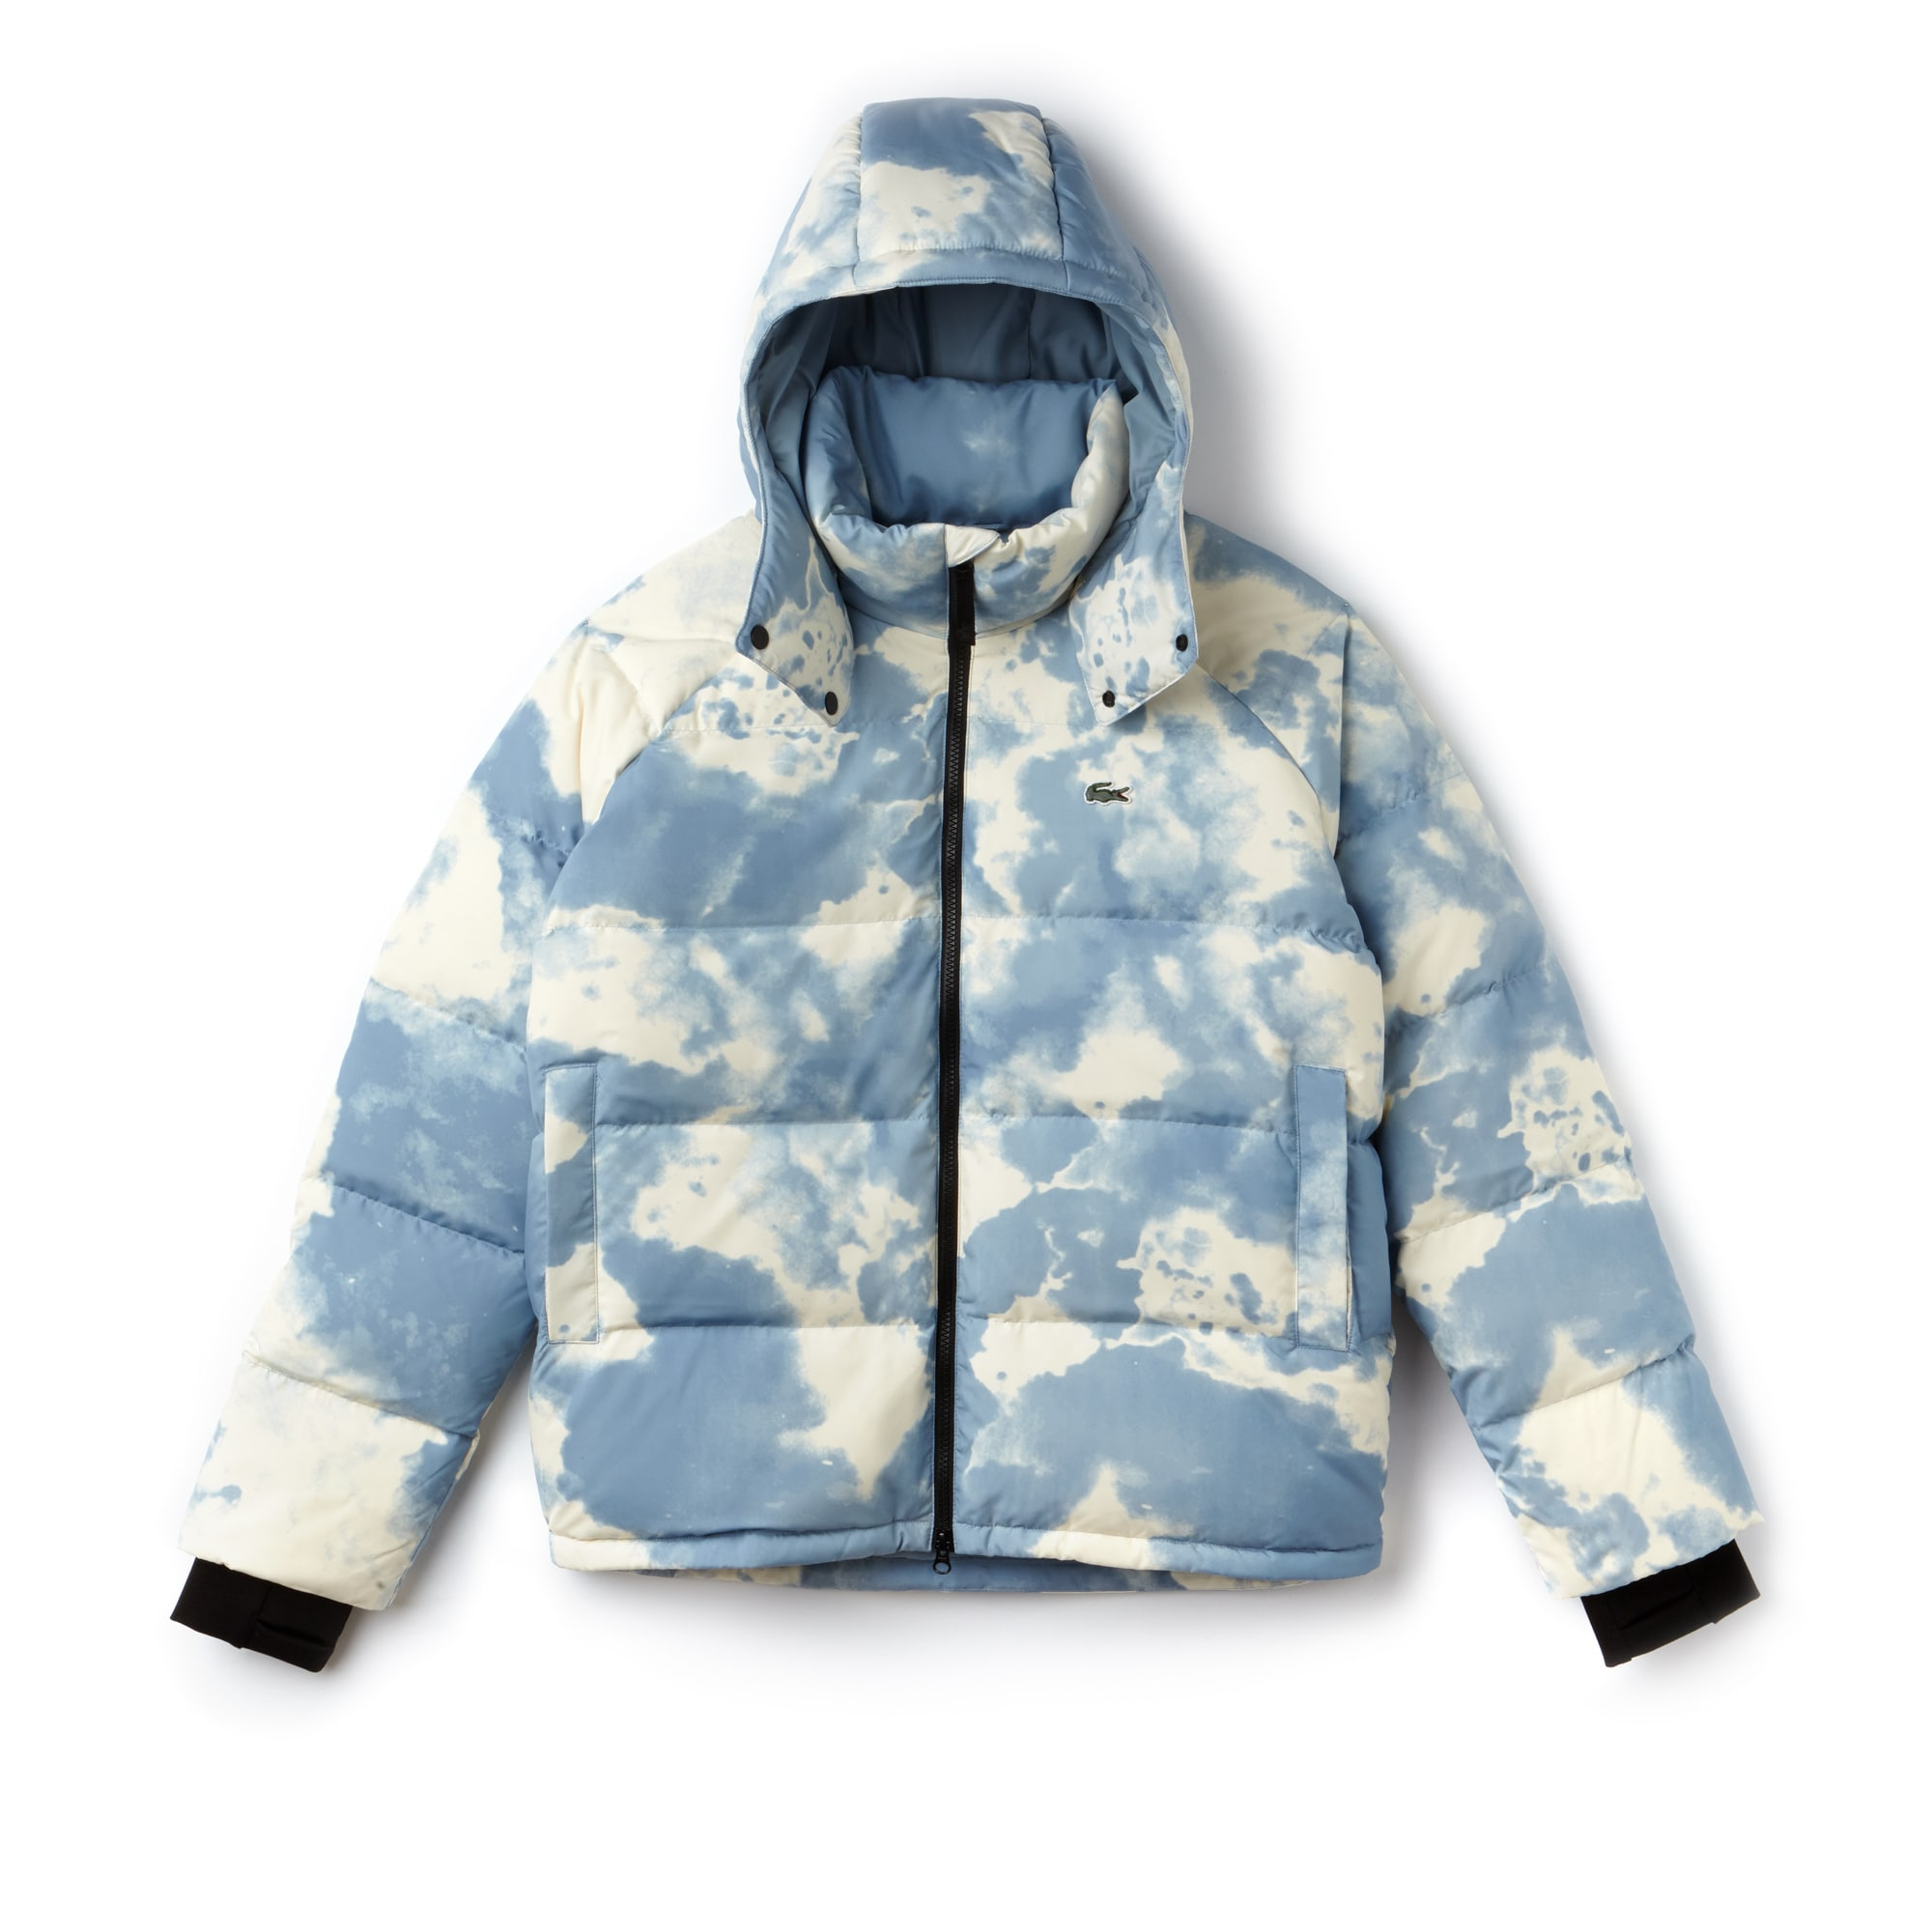 Unisex LIVE Water-Resistant Quilted Jacket